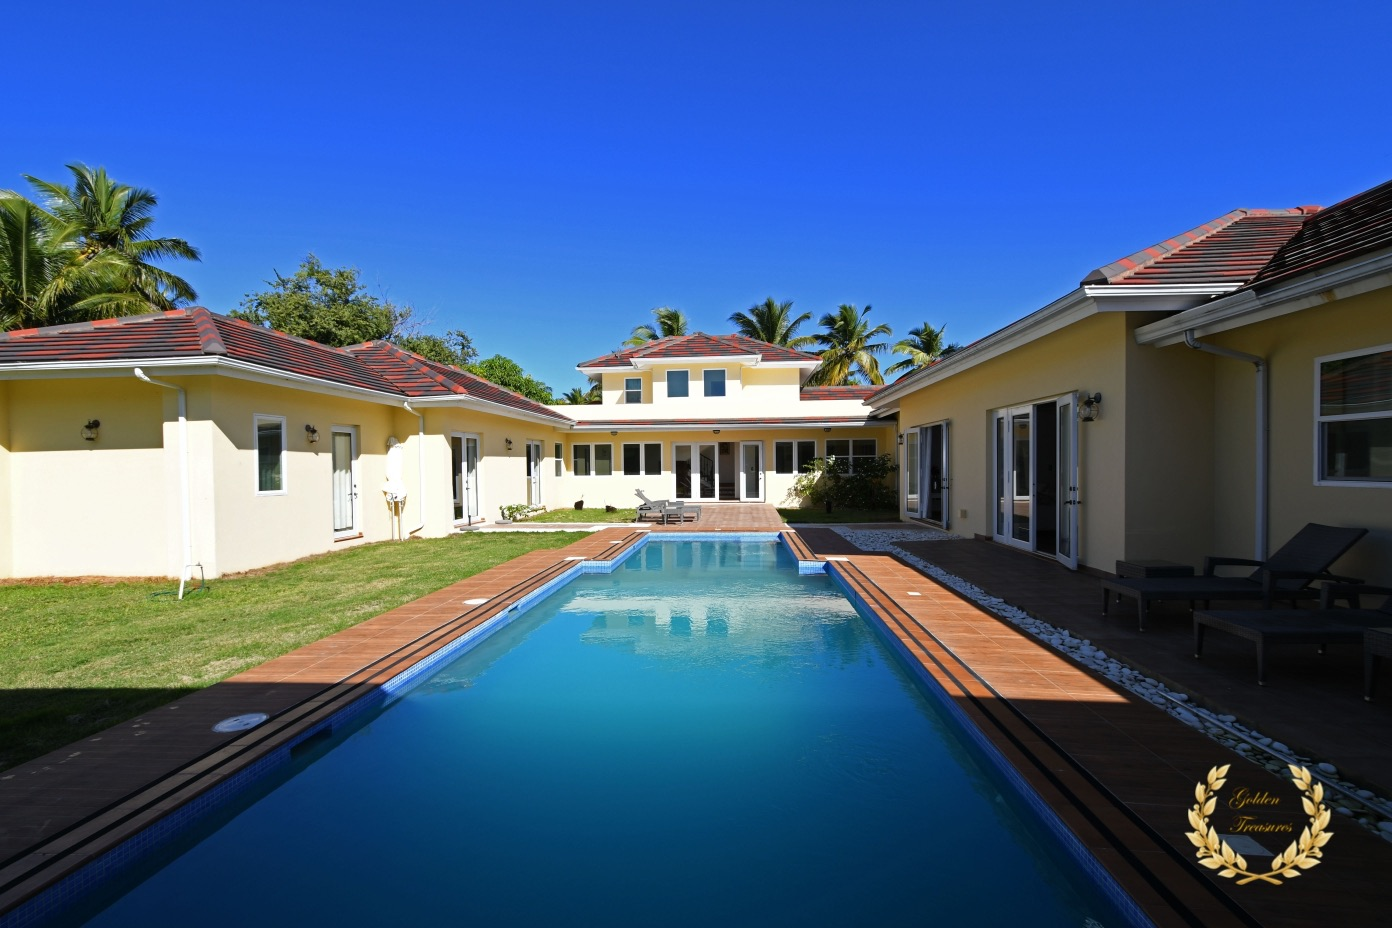 5 Bedroom Luxury Villa Rental Cabarete